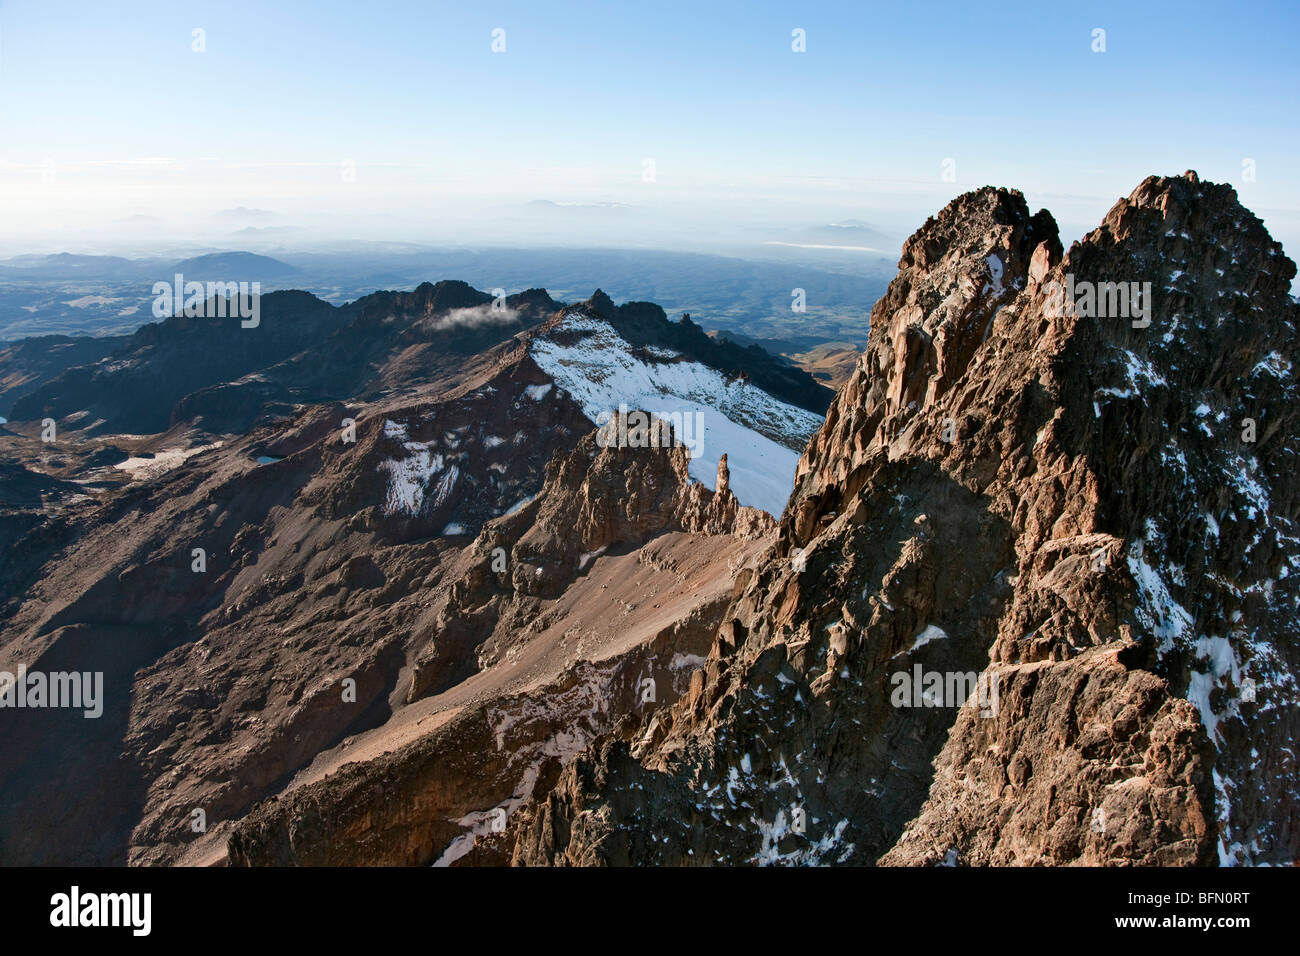 Kenya. The snow-dusted twin peaks of Mount Kenya, Africa  s second highest mountain, with Point Lenana and Lewis - Stock Image